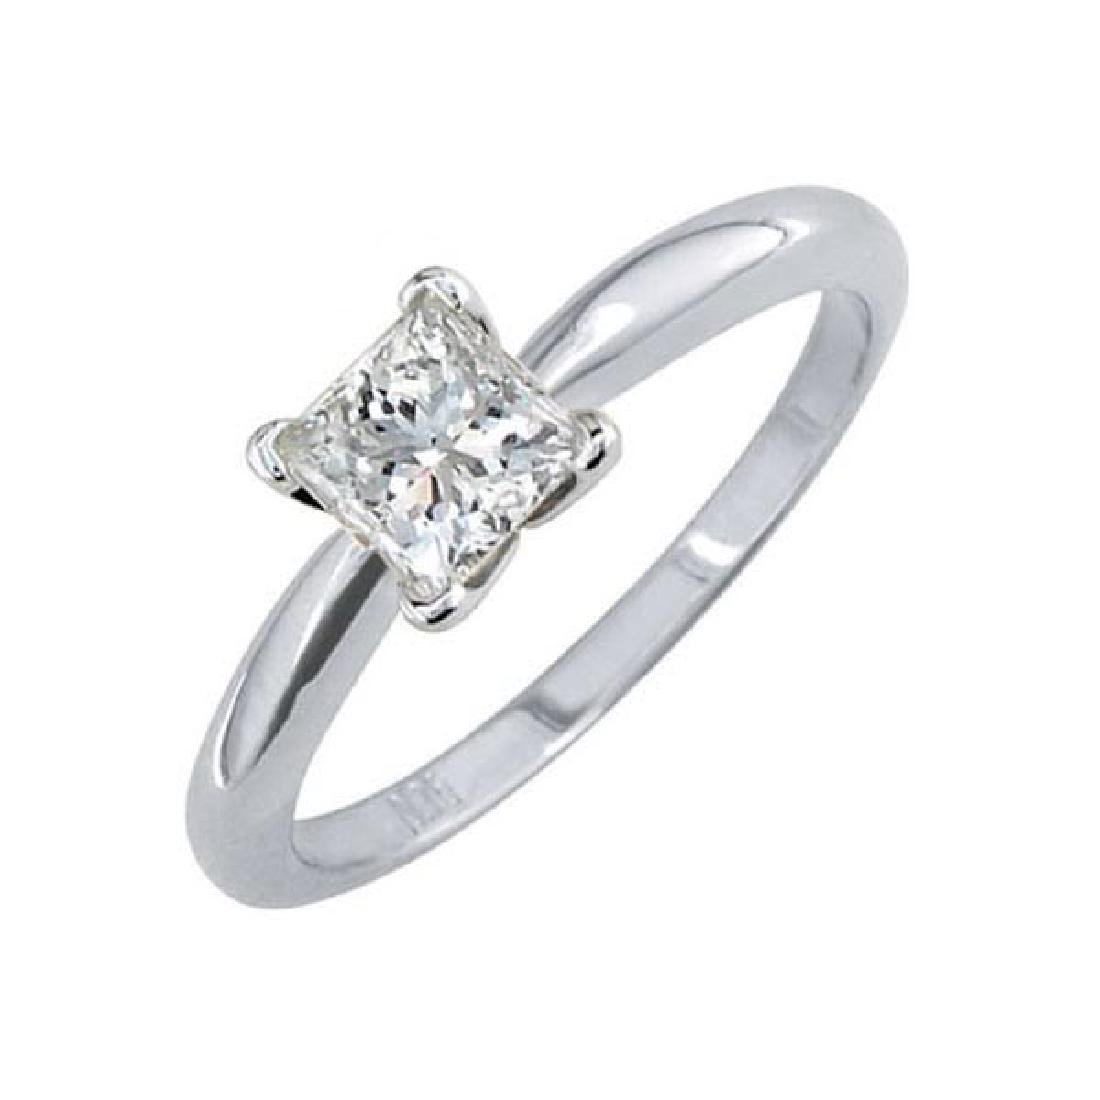 Certified 1.16 CTW Princess Diamond Solitaire 14k Ring